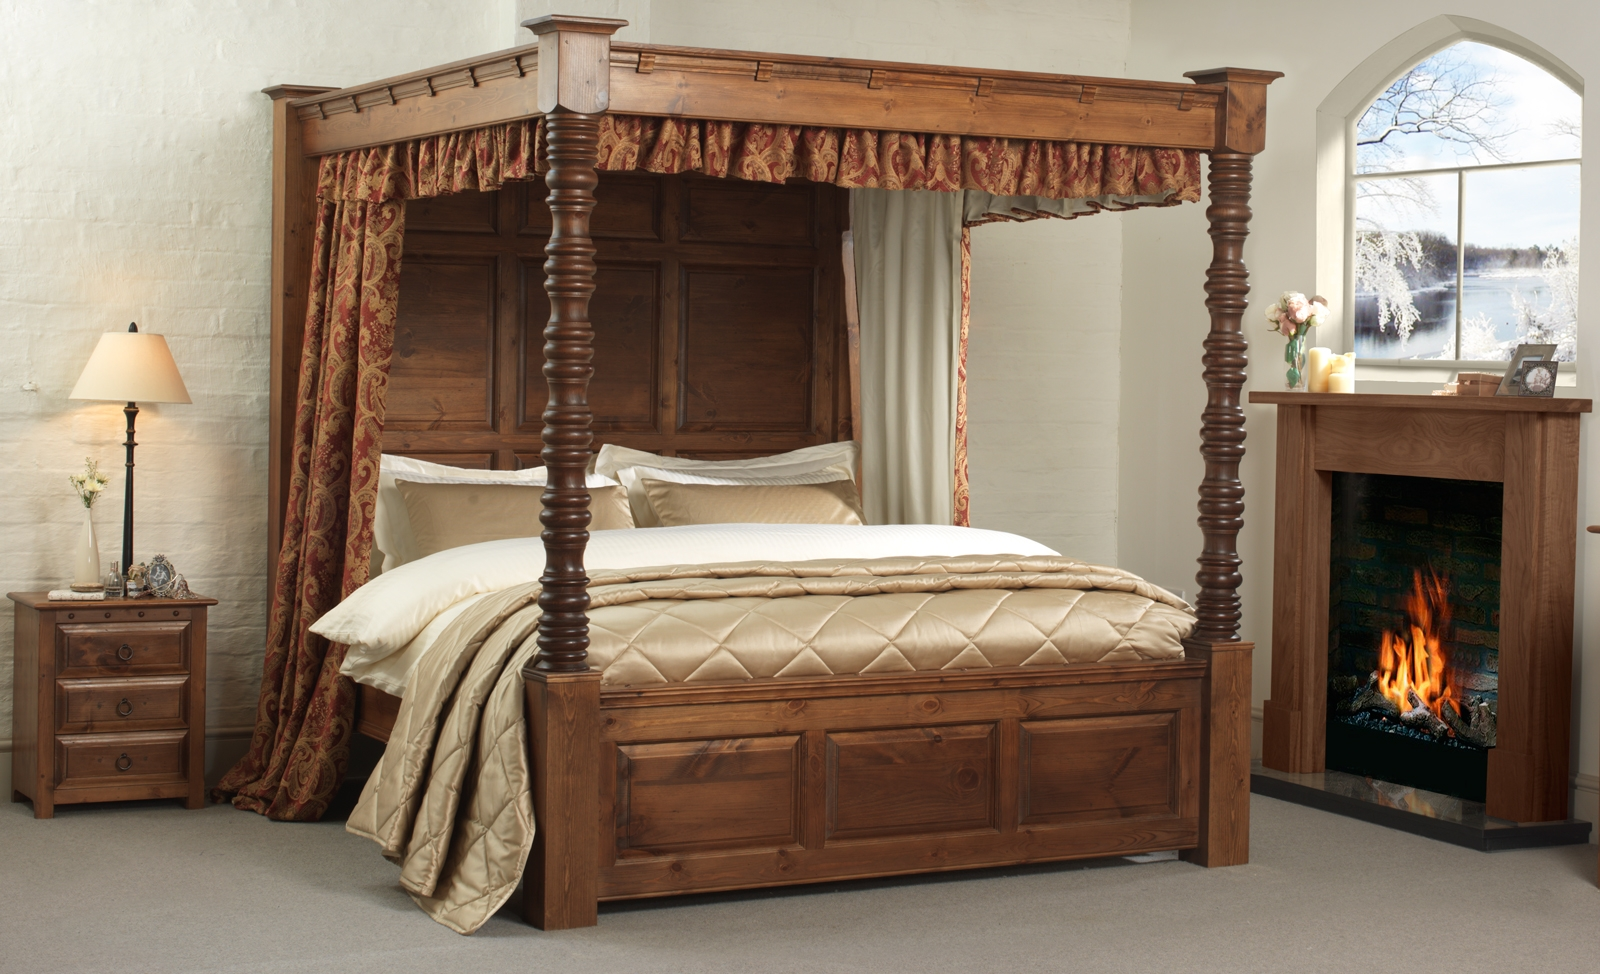 King Bed With Posts California King Bed Frame With Posts Bed Frames Ideas